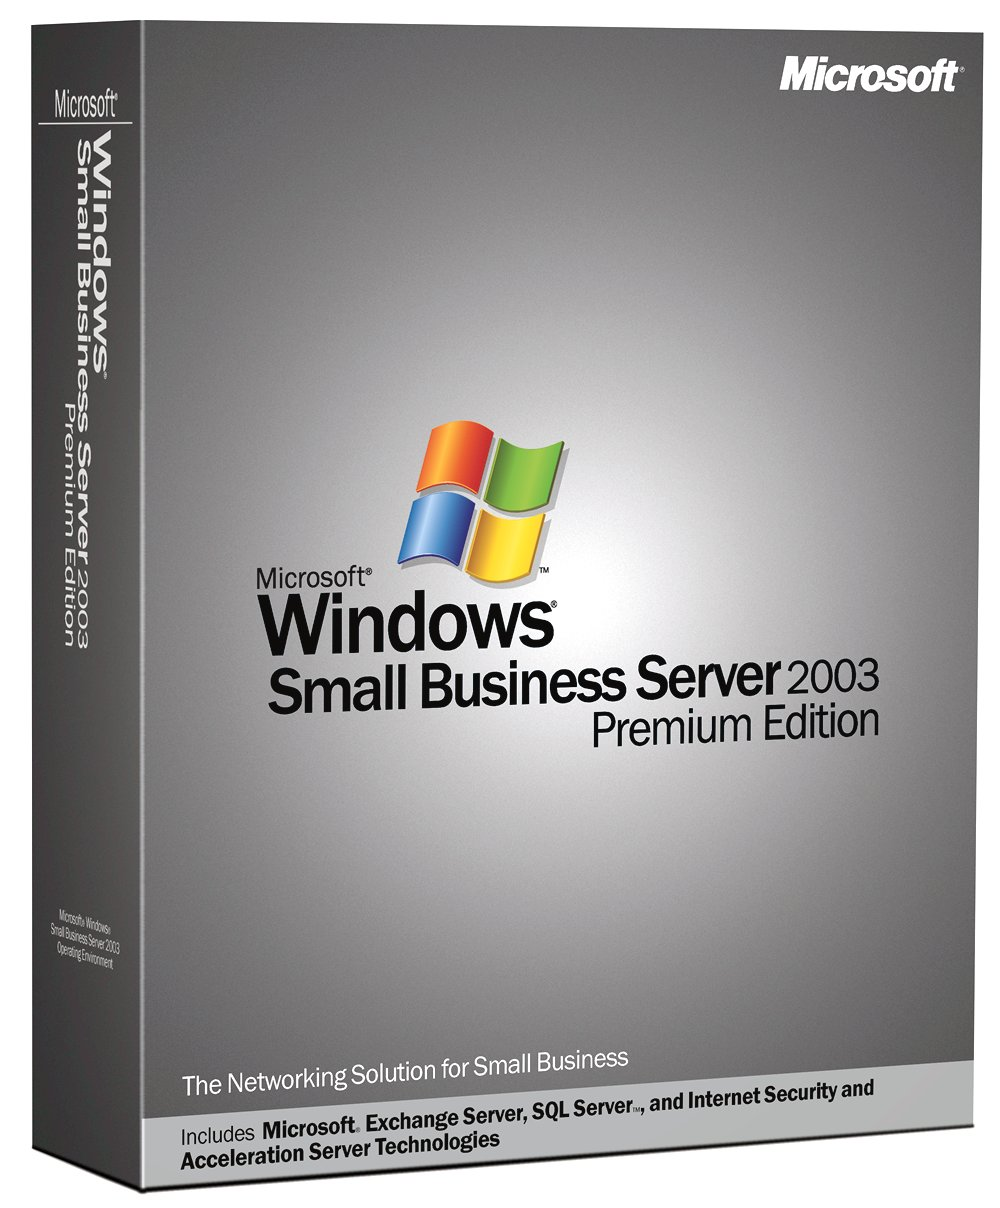 Windows Small Business Server 2003 Premium Edition product key